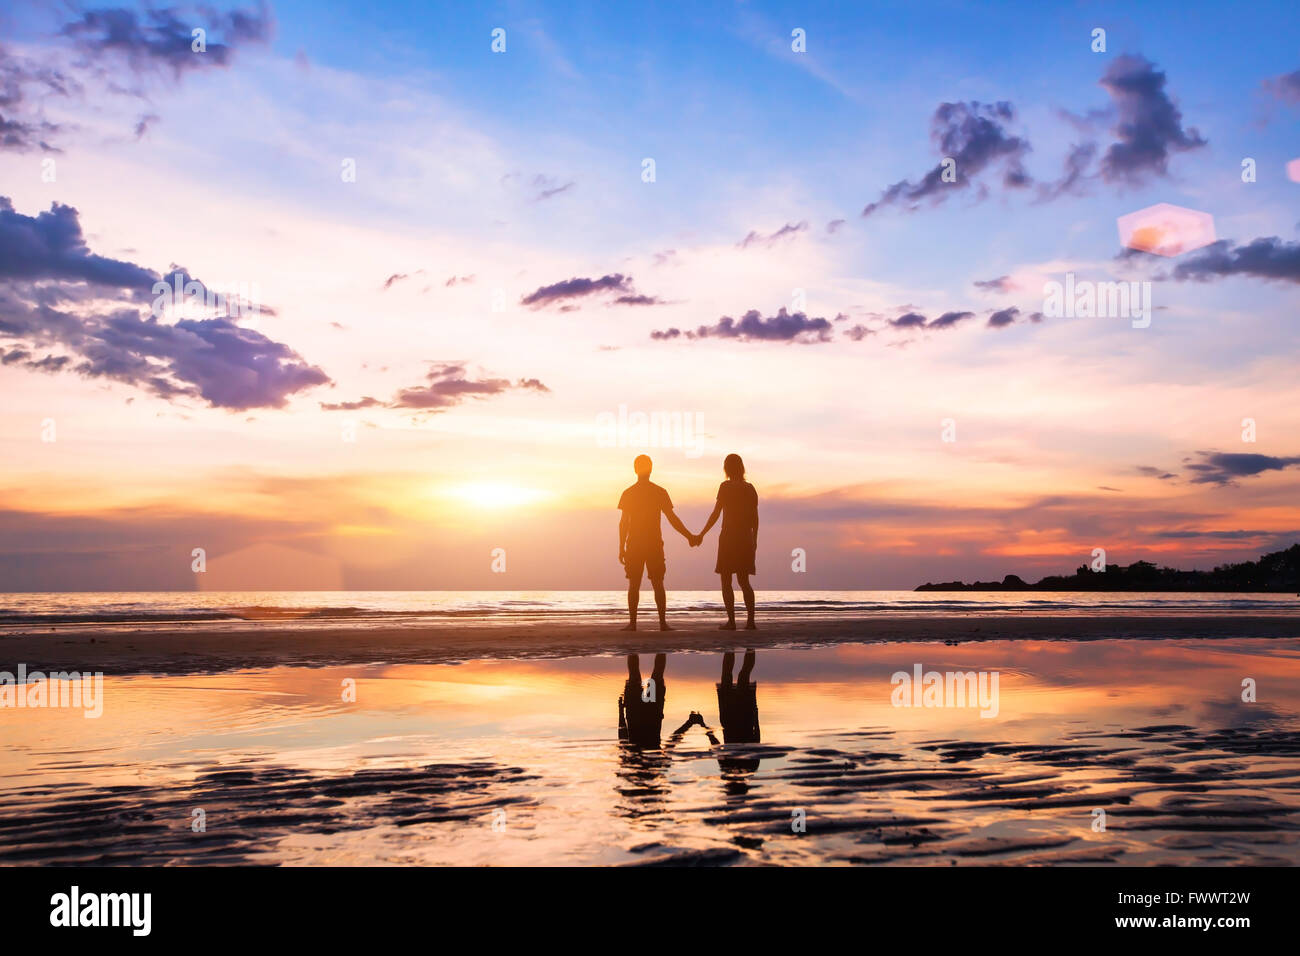 romantic couple on the beach at sunset, silhouettes of man and woman together - Stock Image